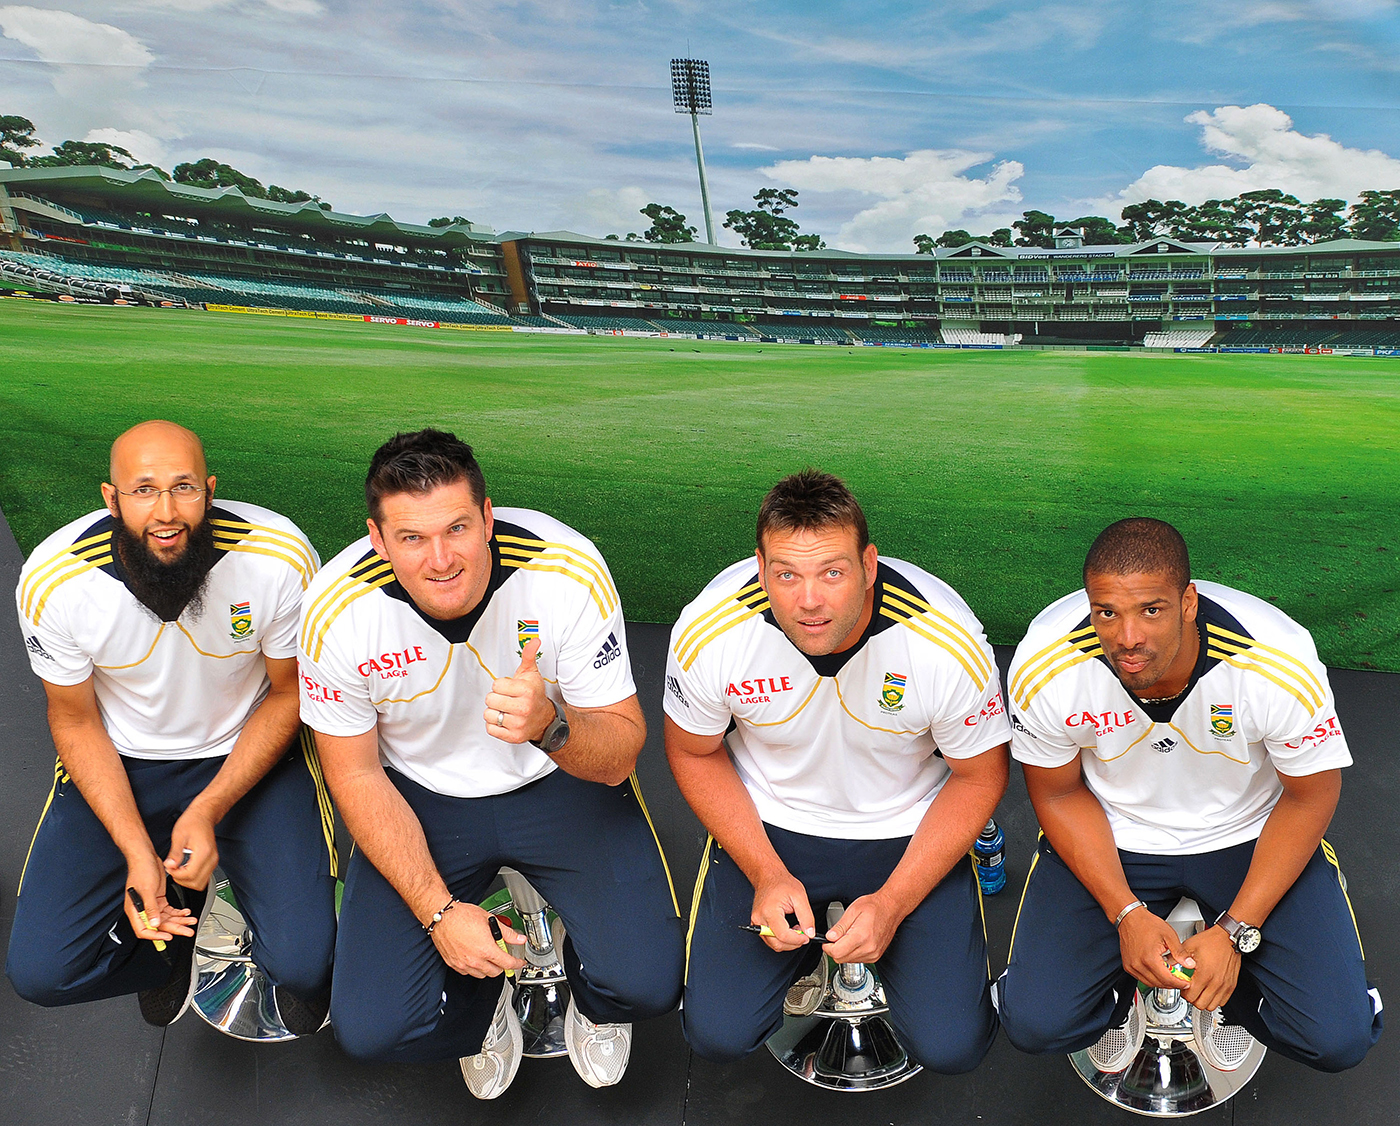 The legacies of many South African cricketers were built on the toil of Kallis